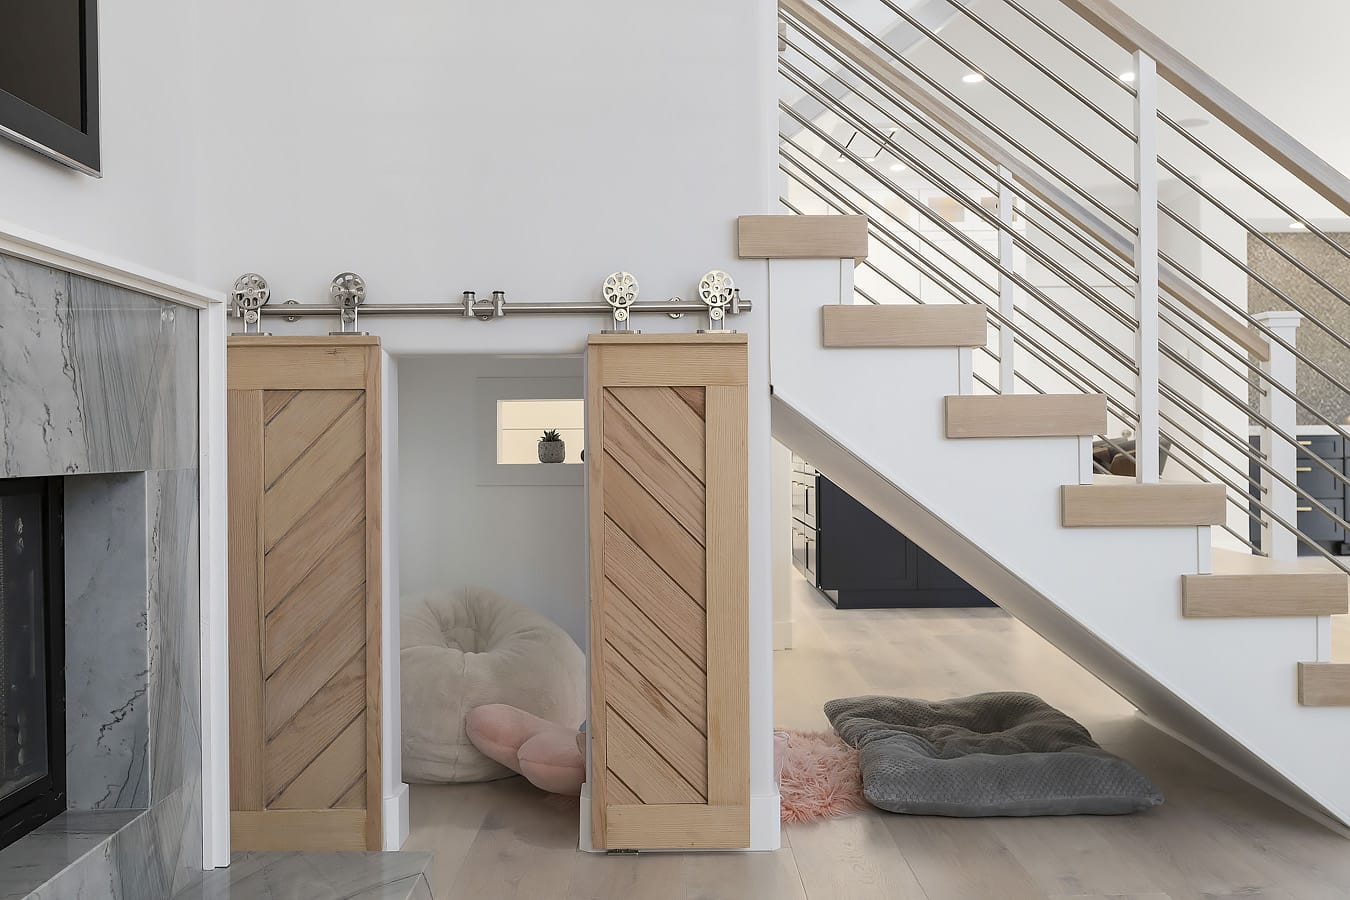 SHI Coastal Design - Cubby Room Under Stairs